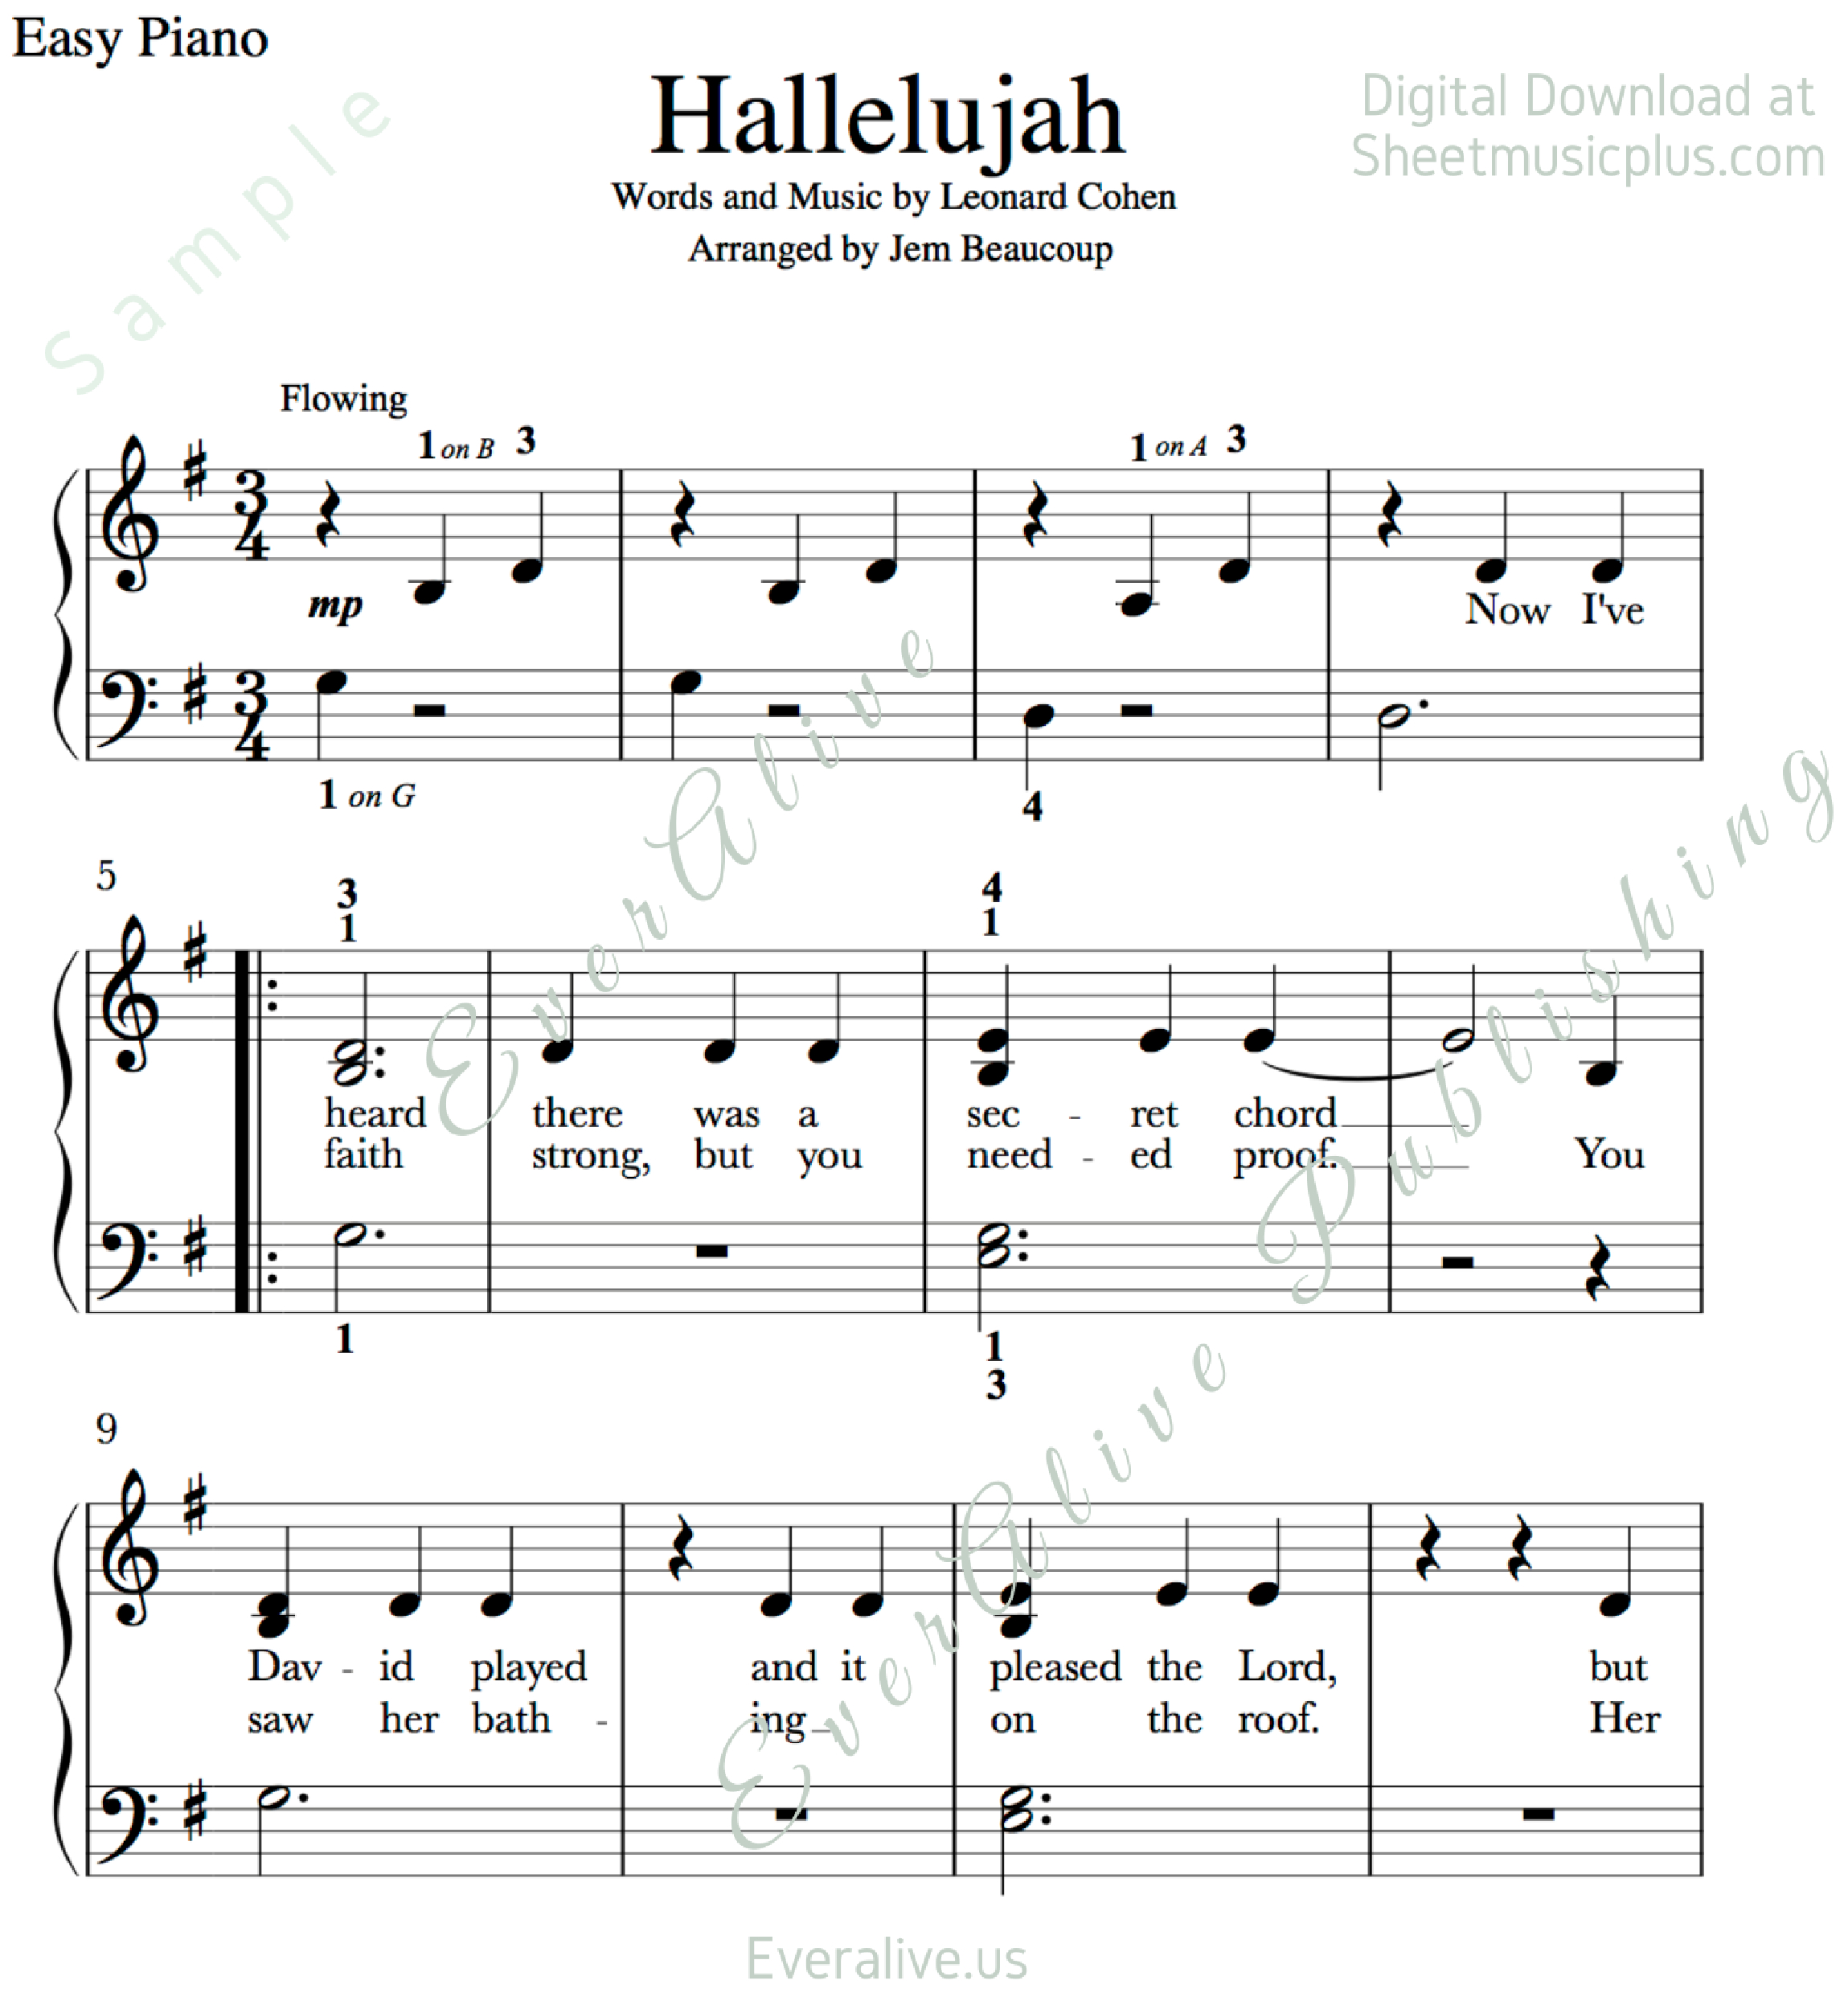 Print And Download. Hallelujah Easy Piano Music. Leonard Cohen - Hallelujah Easy Piano Sheet Music Free Printable